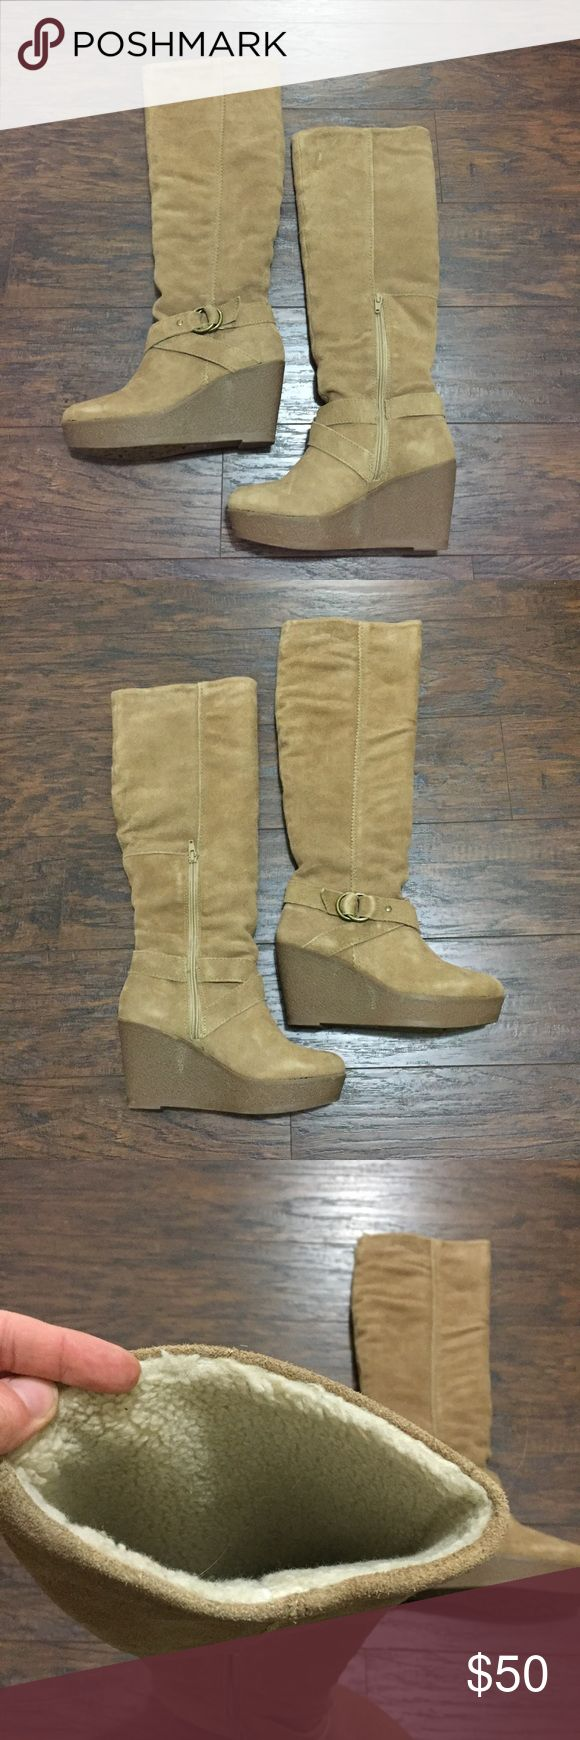 """Suede knee high wedge boots Aldo light brown knee high boots in super soft suede with decorative buckle. Interior fleece lining. Rubber wedge heels measure 3.5"""" at height, including a 1"""" platform throughout. Slip-on with inside lower zipper. Like new, barely worn (although I love them...). Size 8. Aldo model """"Neely"""", originally purchased for $140, will ship in original box. Aldo Shoes Heeled Boots"""